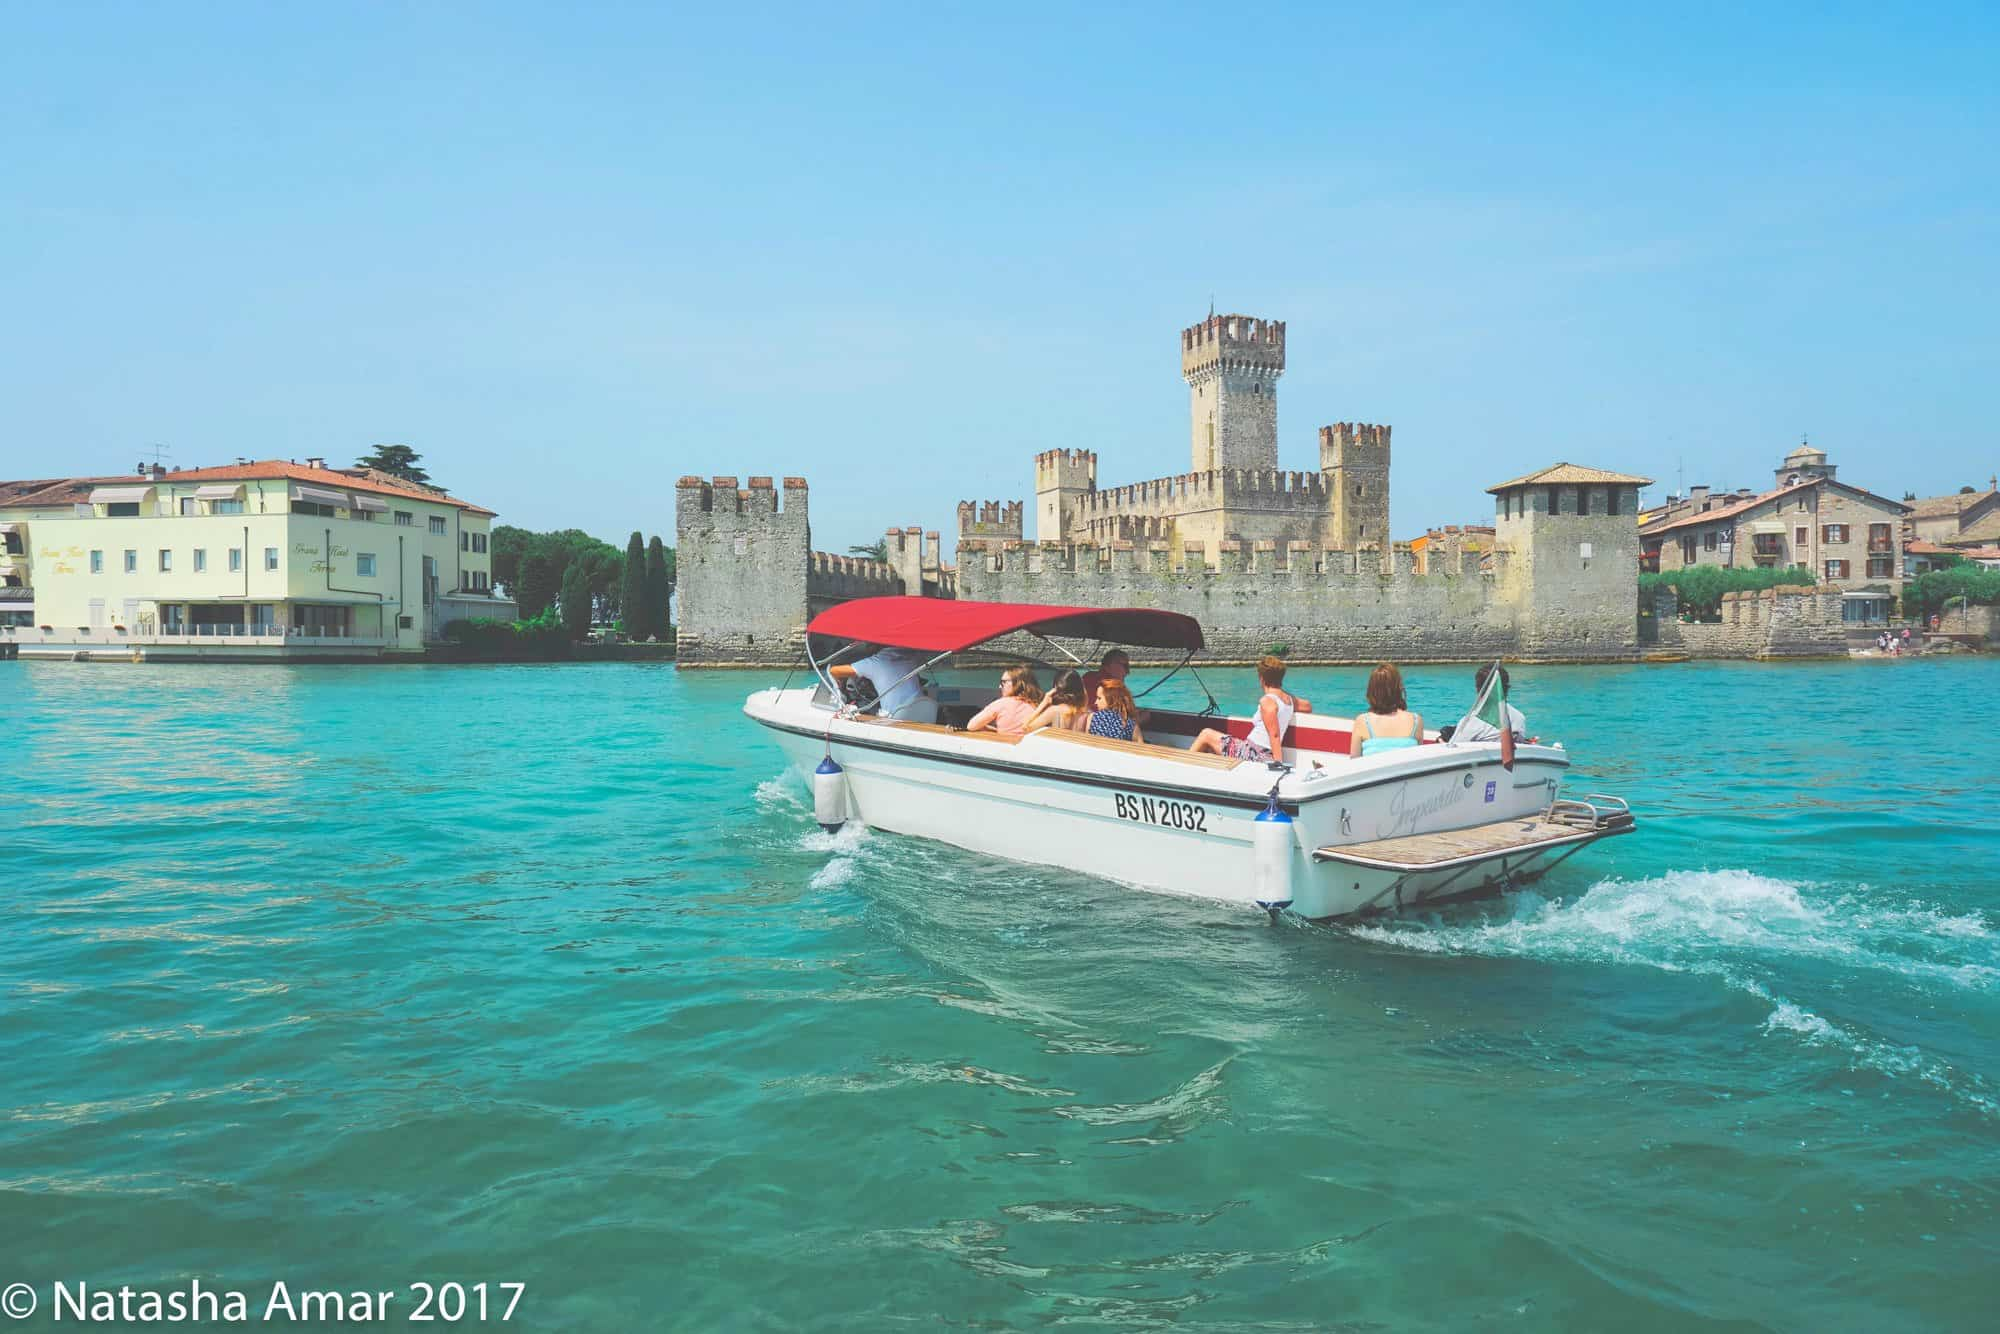 Lake Garda Holidays: The perfect Italian lakeside trip of beautiful towns, medieval architecture, fantastic views, quality wines, and amazing food!